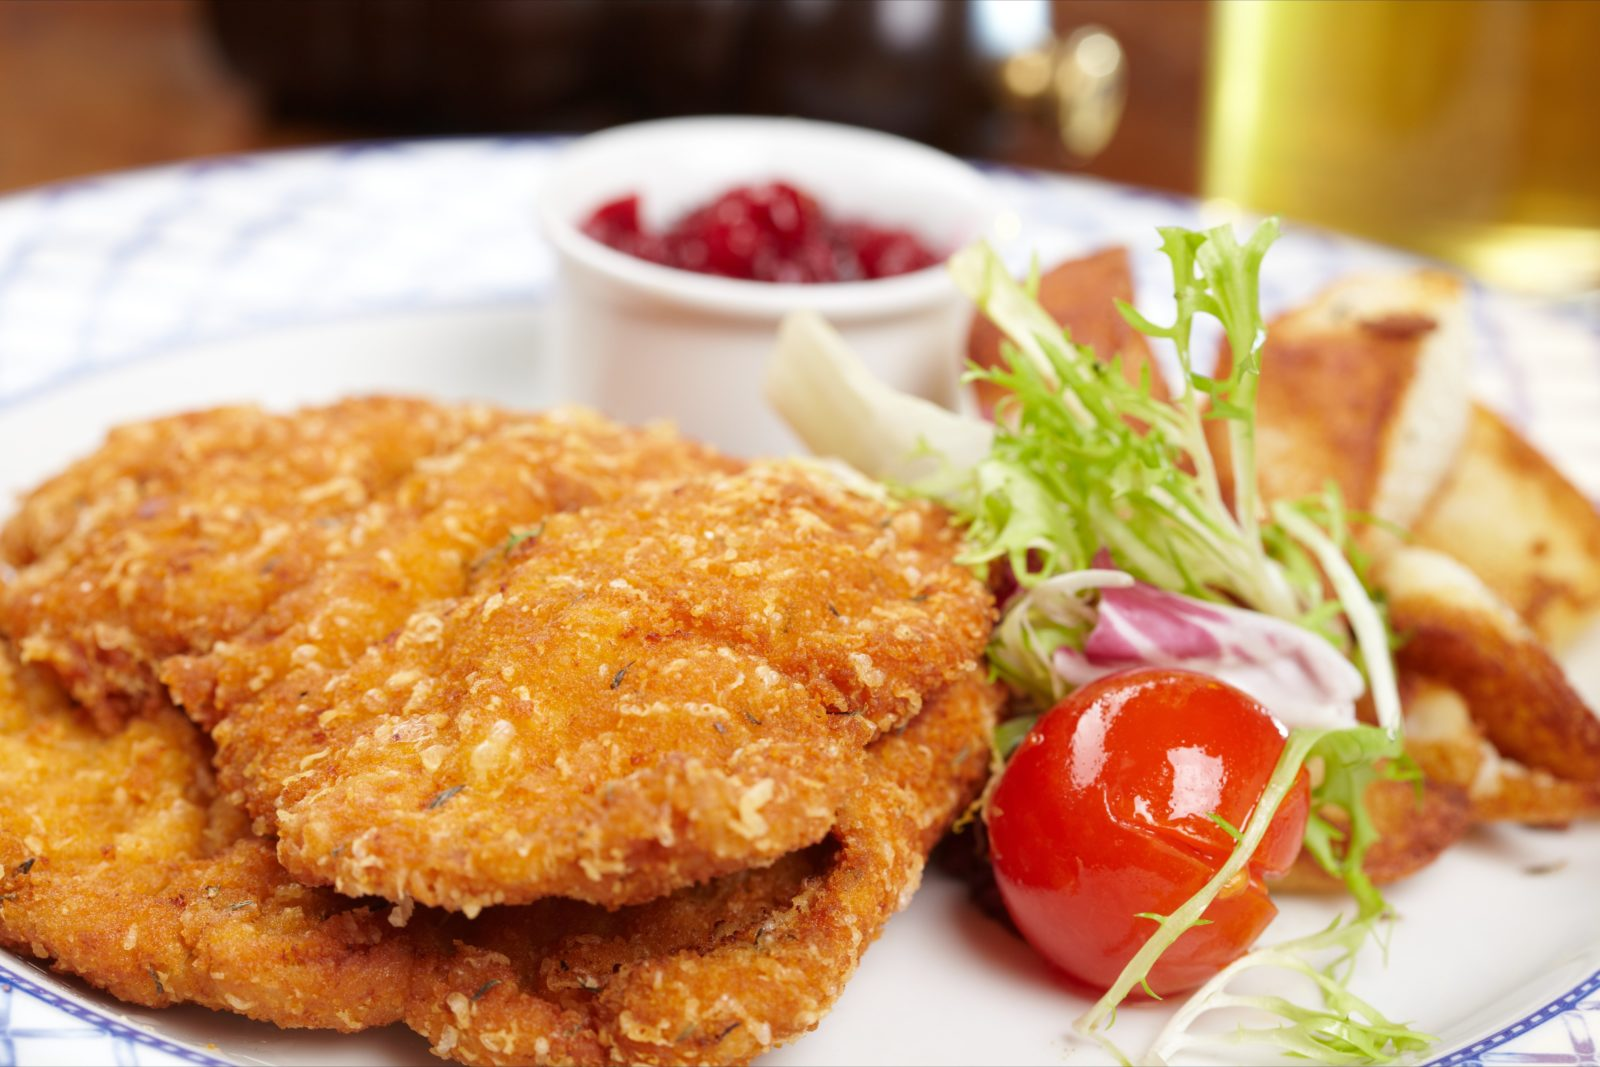 Image of a schnitzel on a plate